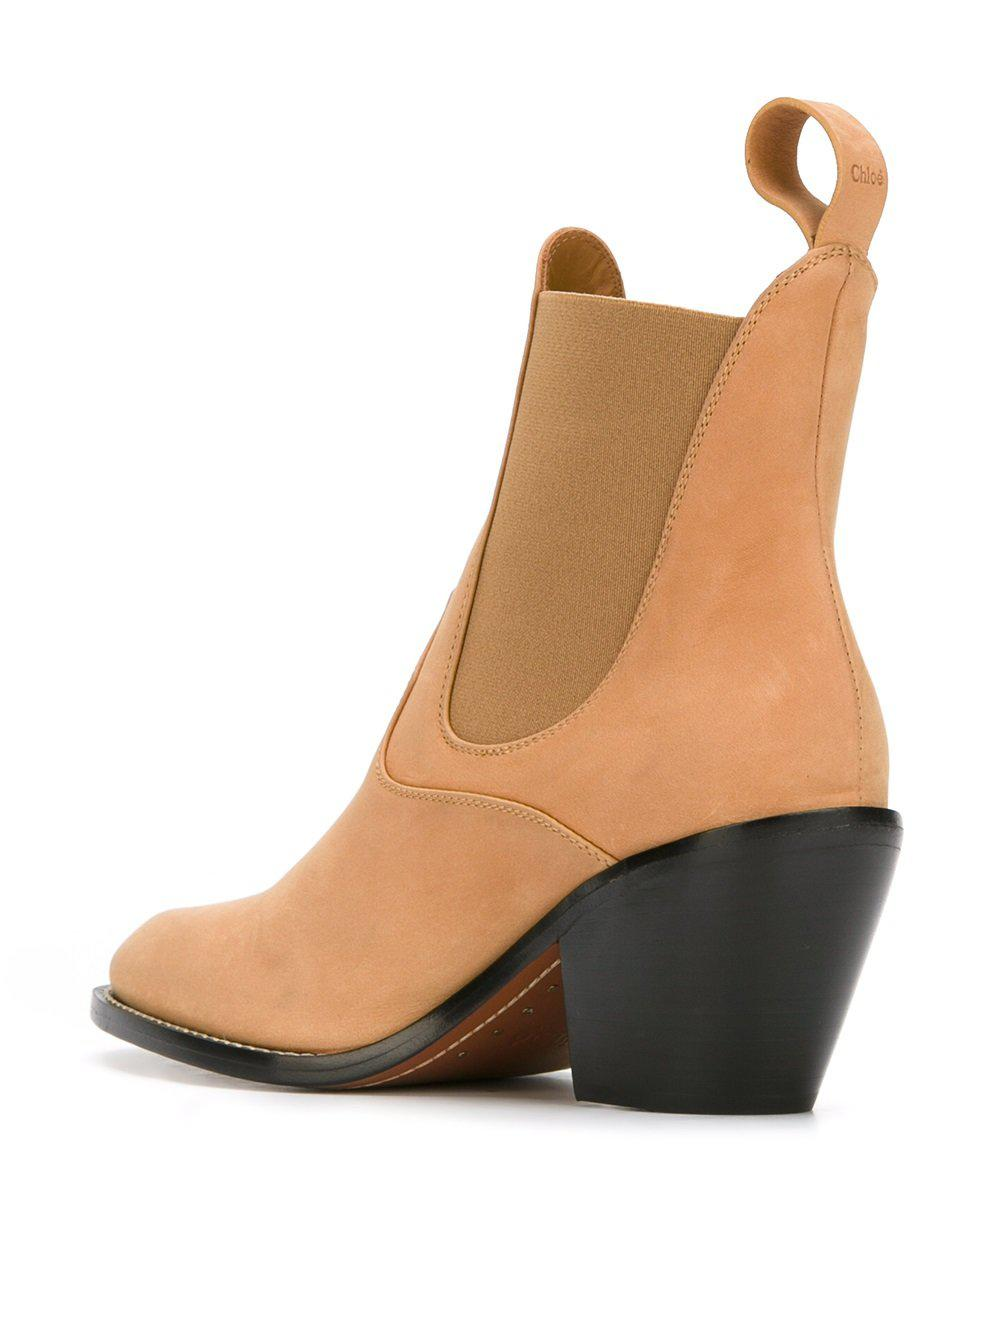 Chloé Leather Western Chelsea Boots in Brown